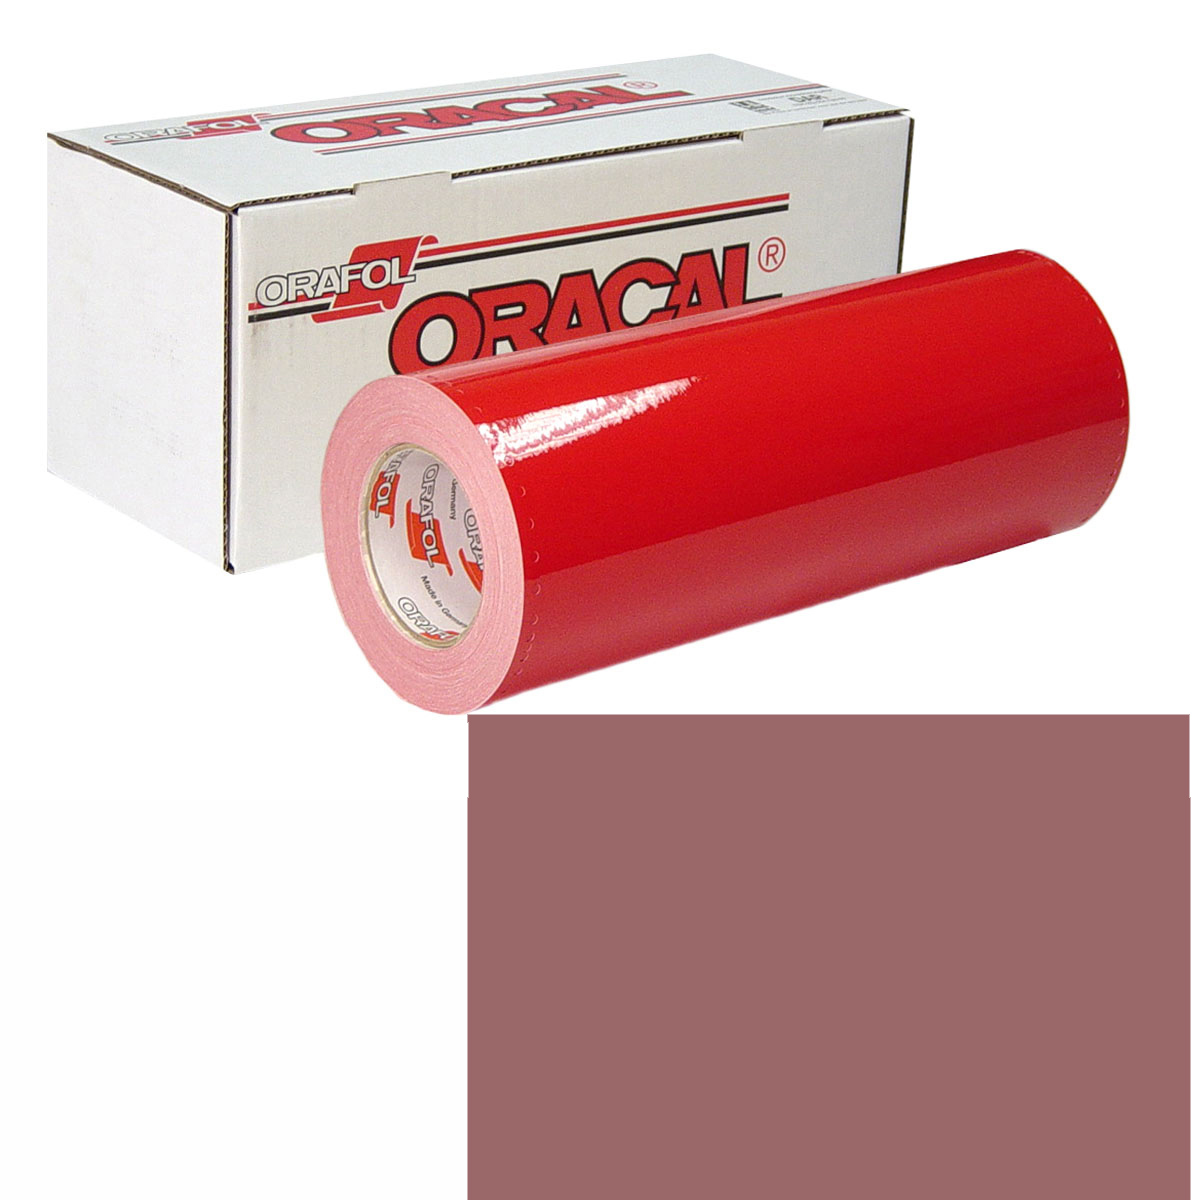 ORACAL 951 15in X 50yd 079 Red Brown